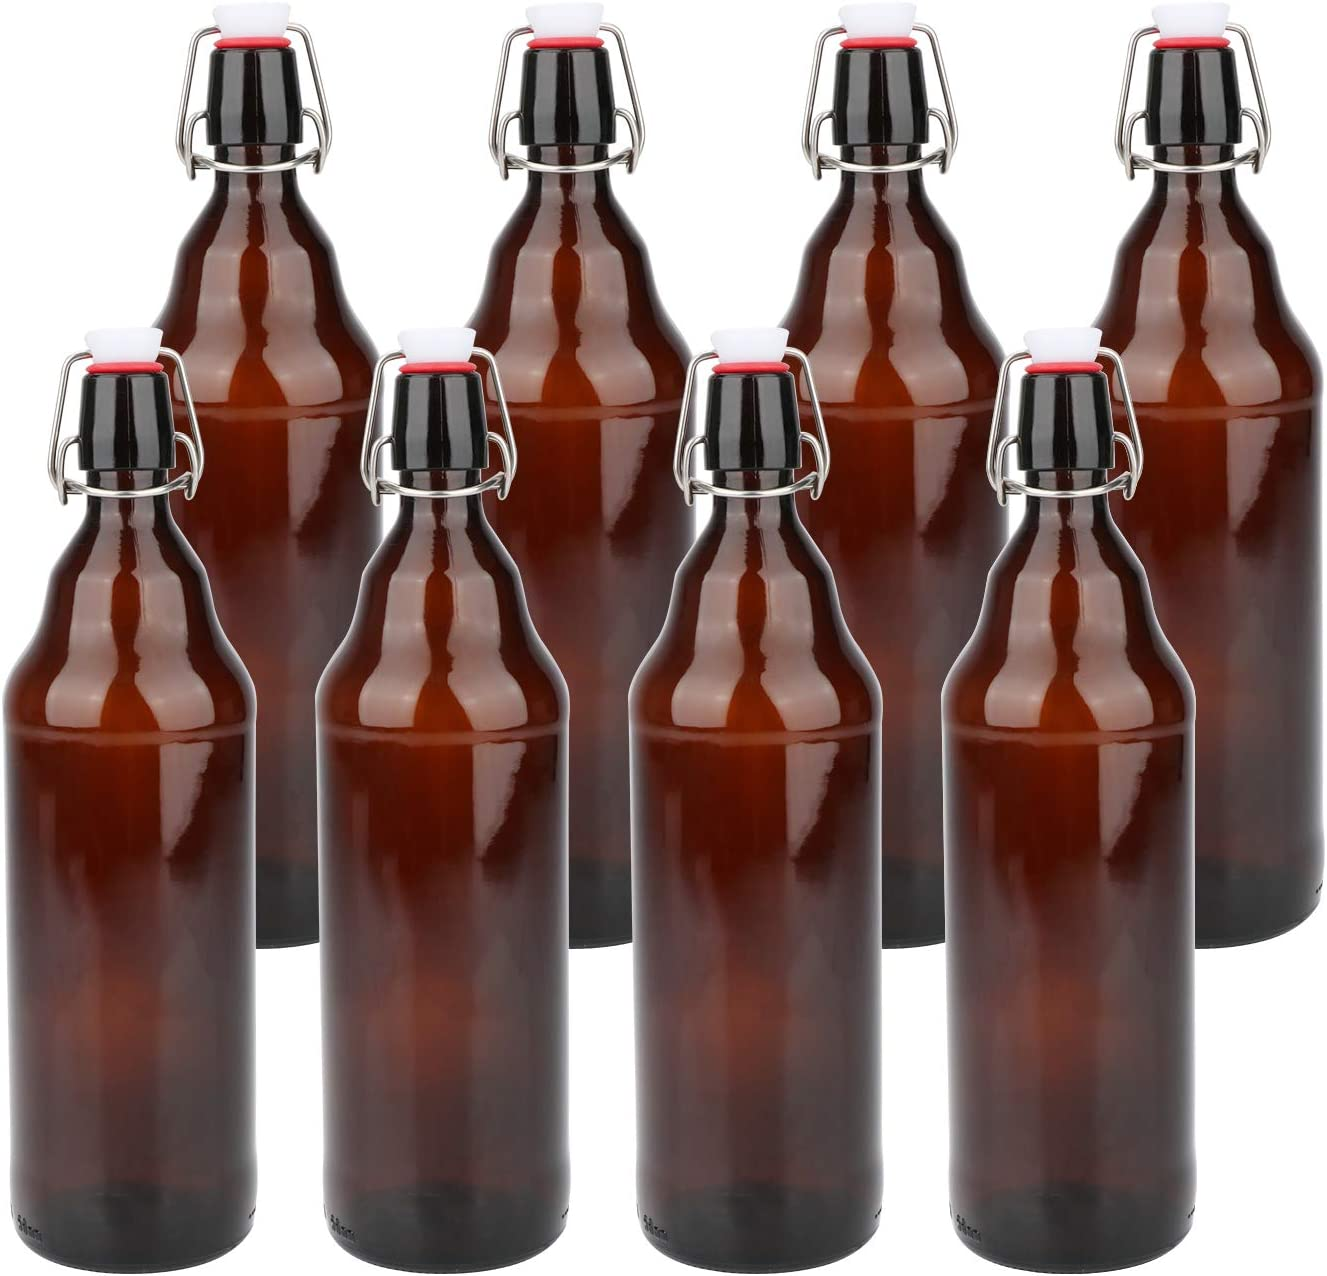 Glass Bottles, COMUDOT Refillable Brown Glass Storage Bottle with Swing Top Lids, Amber Iron Clasp Bottles with Stickers&Pen for Home Brewing, Drinks, Sauces, Industrial products, etc (1000ML, 8 PCS)